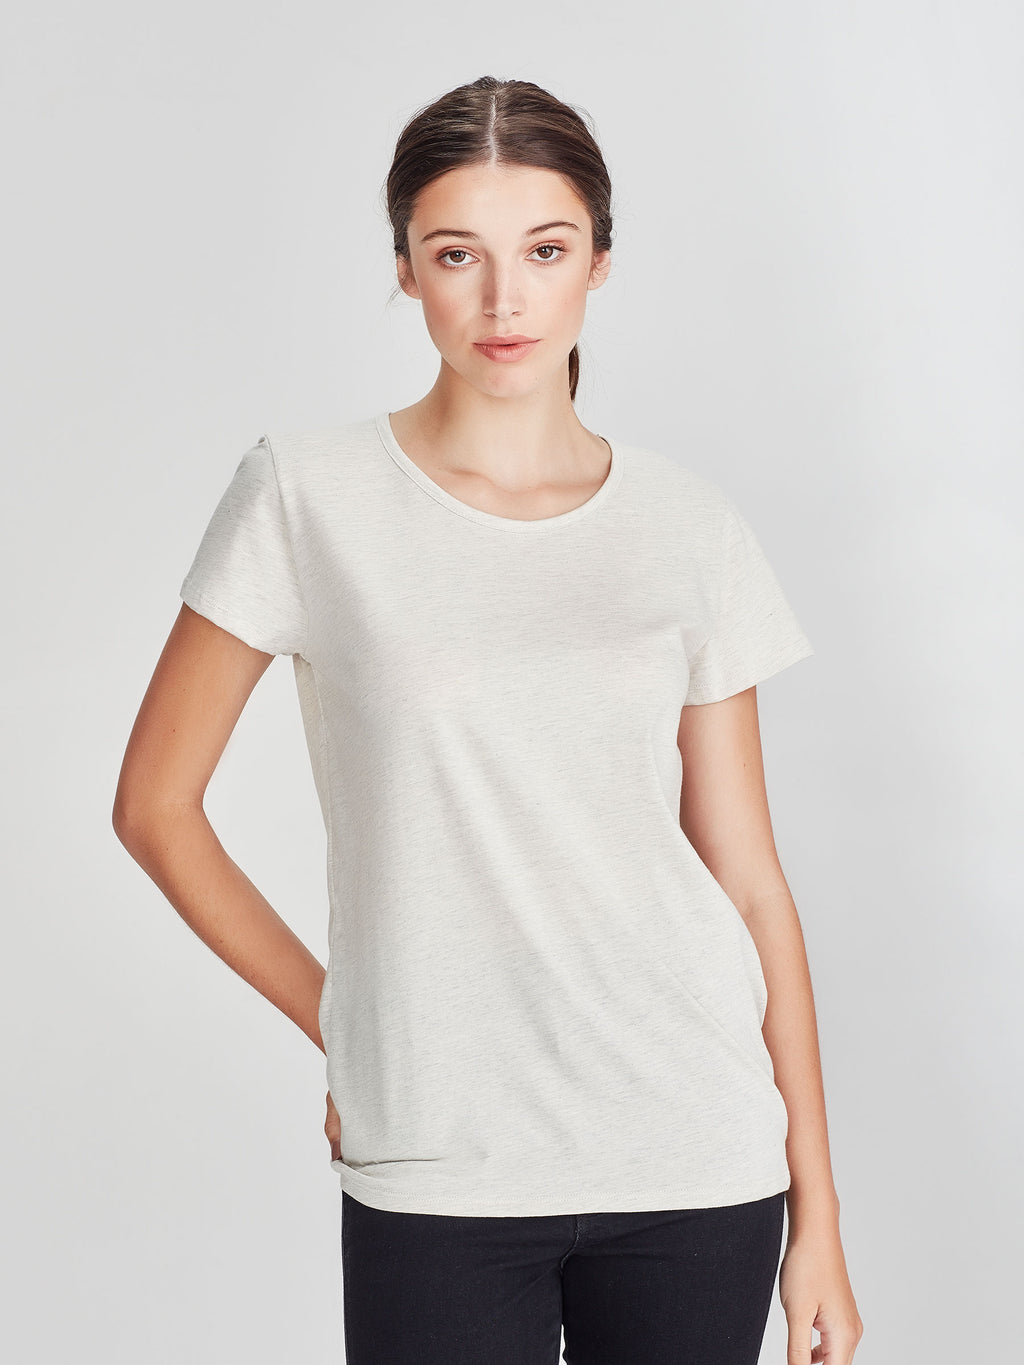 Dean T (Soft Cotton Jersey) Oatmeal